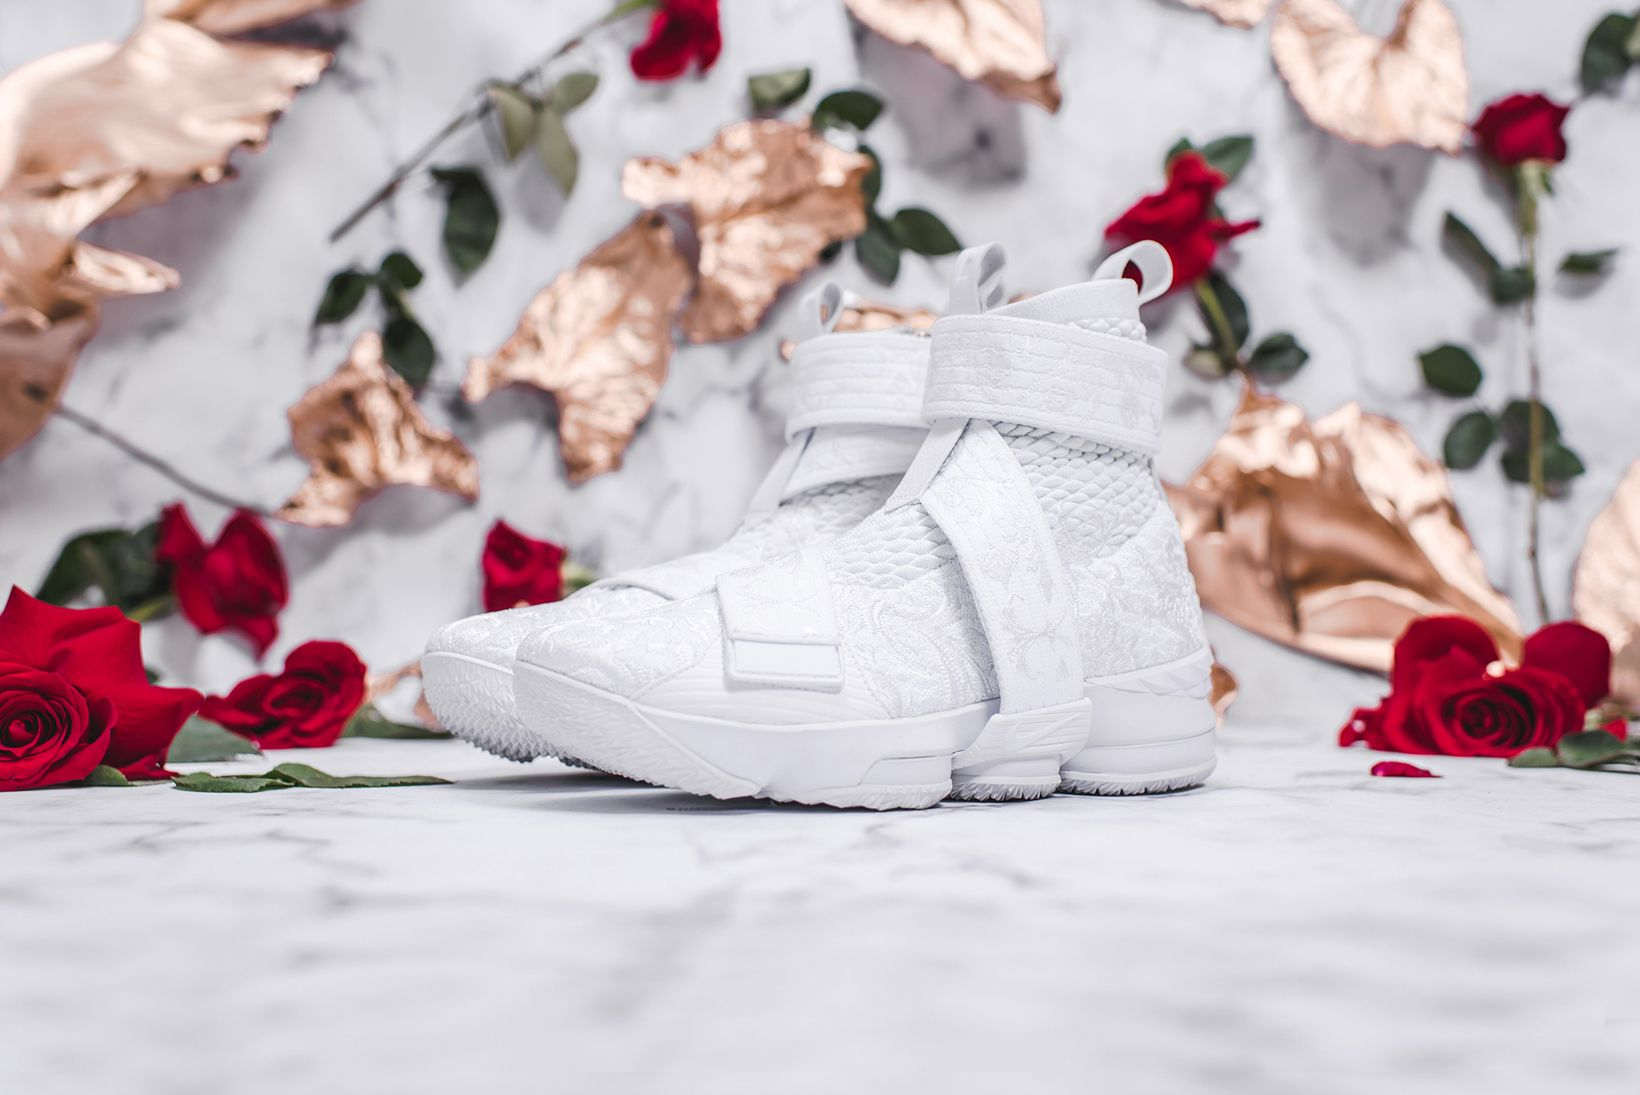 3cd5549f781a7 KITH Long Live the King Collection Chapter 2 LeBron James Ronnie Fieg Nike  Basketball 15 xv sneakers black floral flower embroidery embroider white  green ...